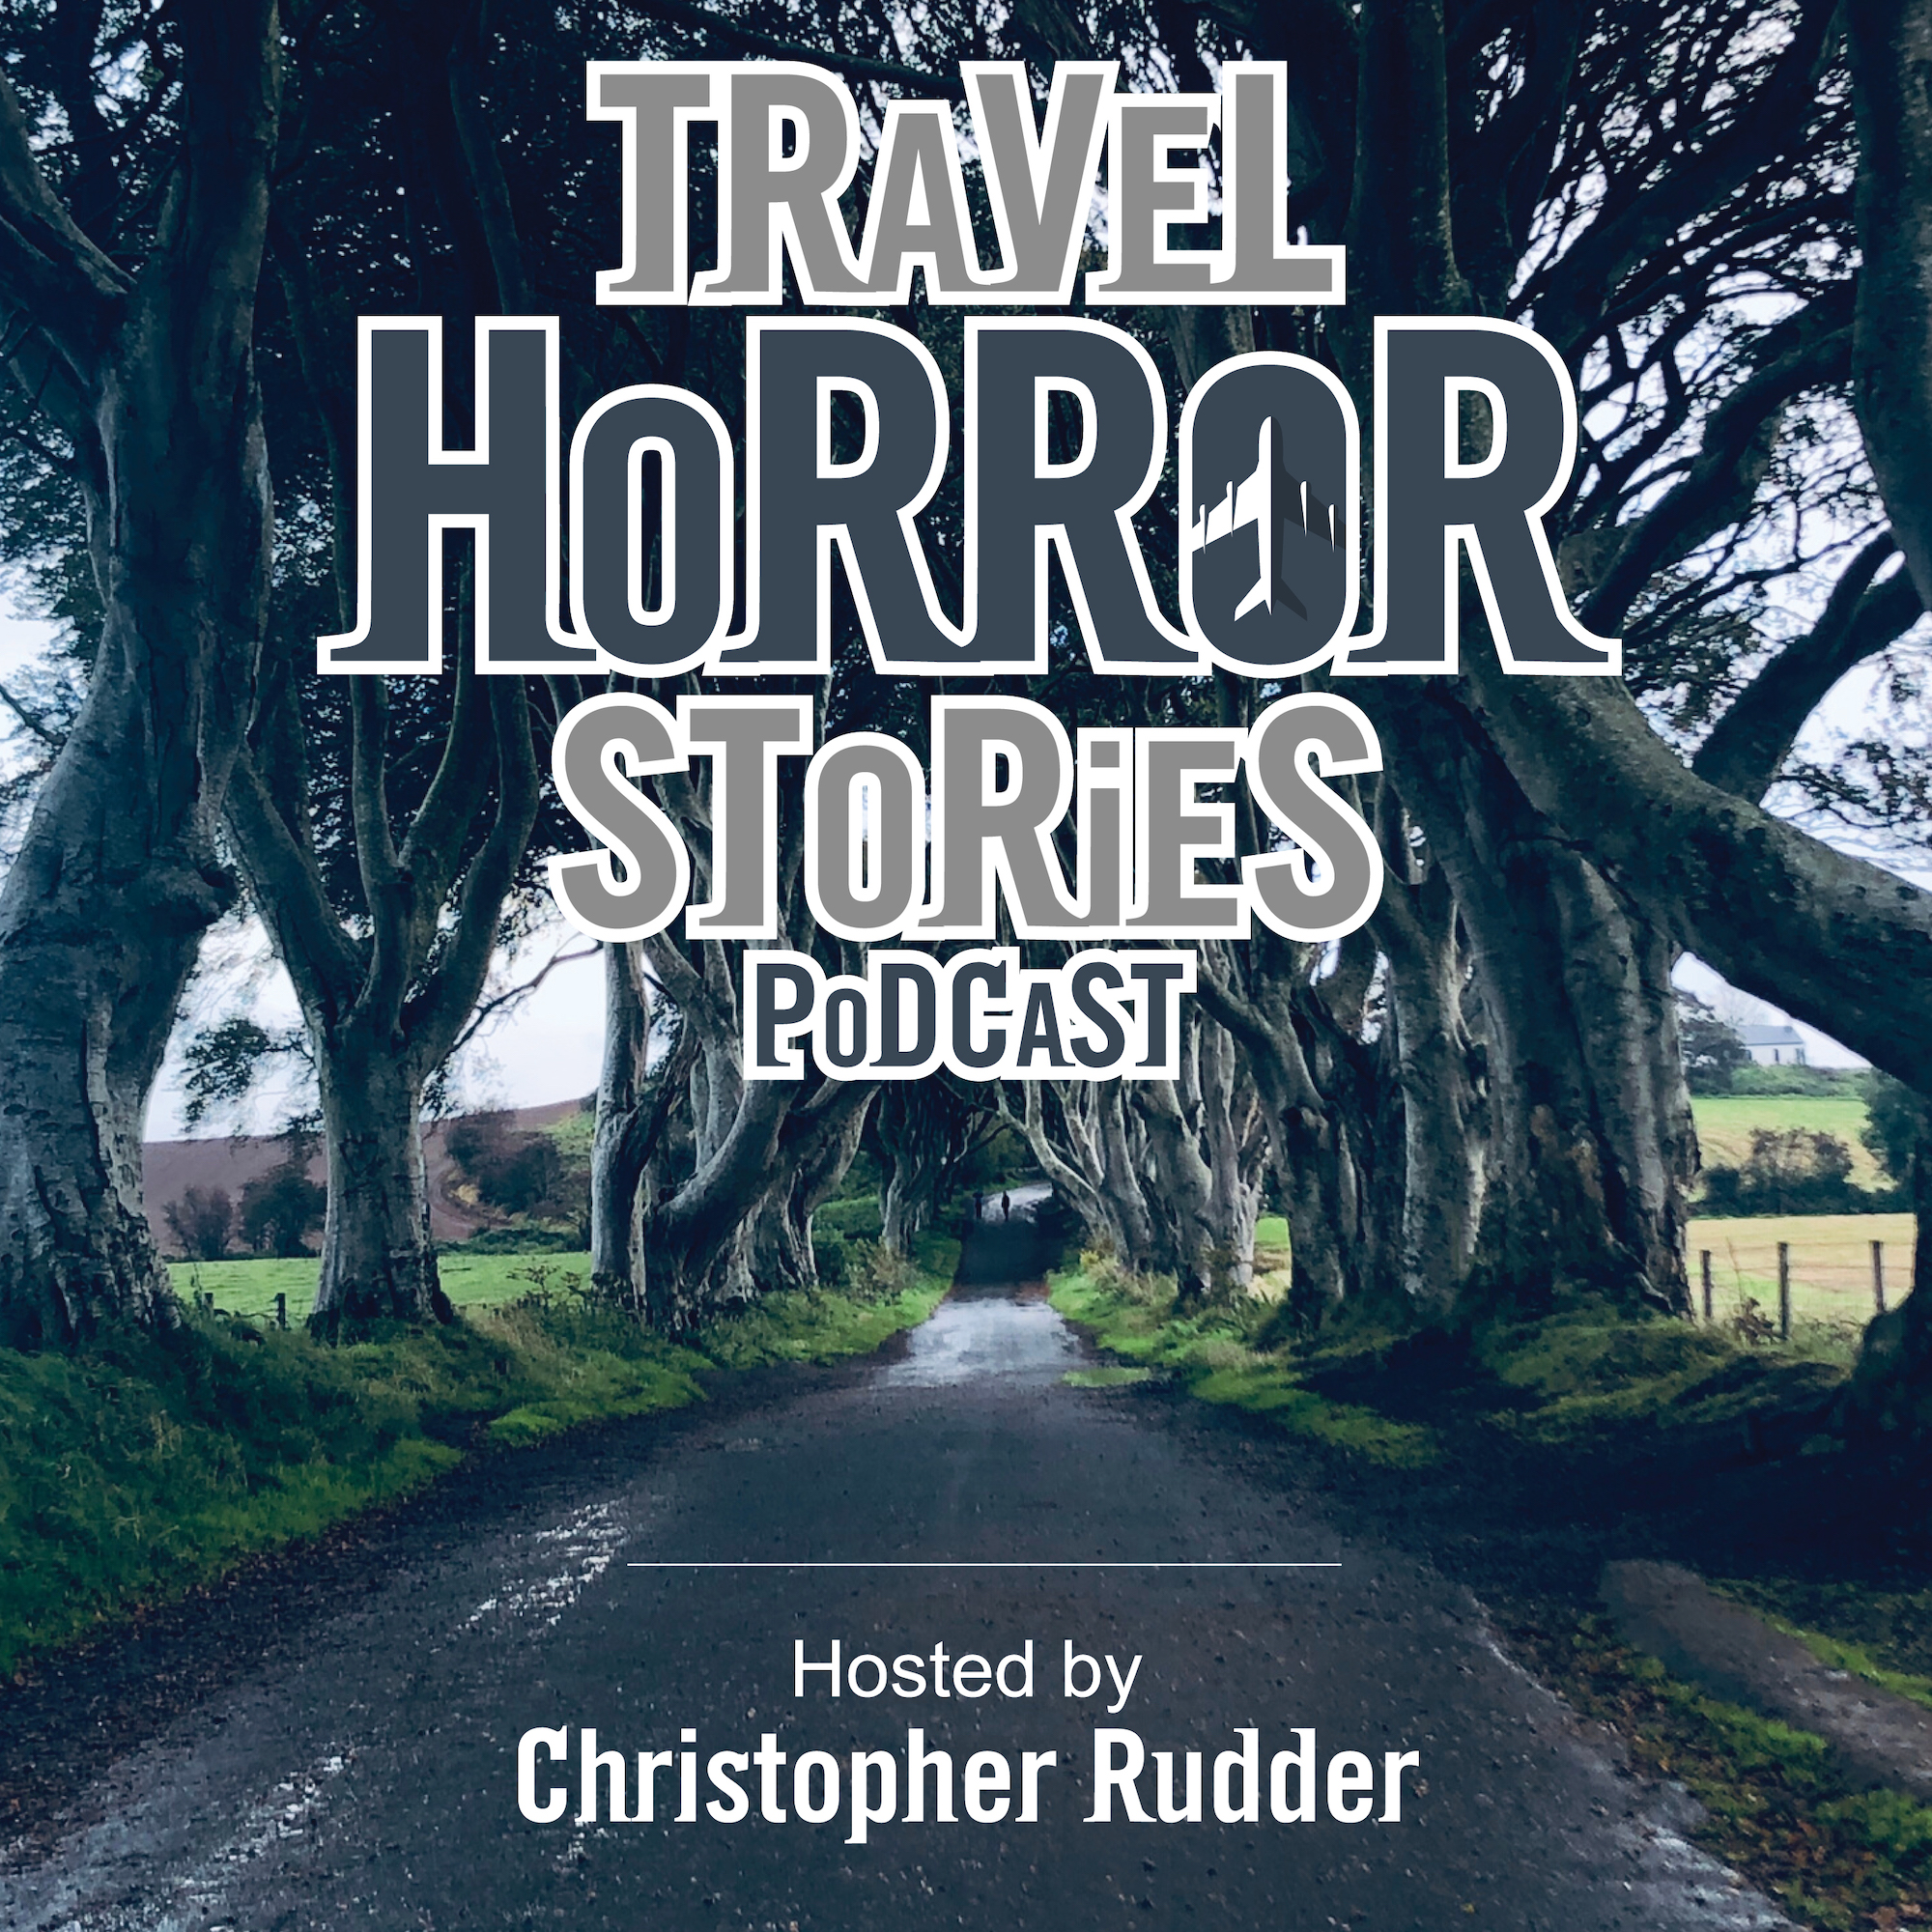 Travel Horror Stories Podcast - Podcast Cover Art - Social Media Marketing